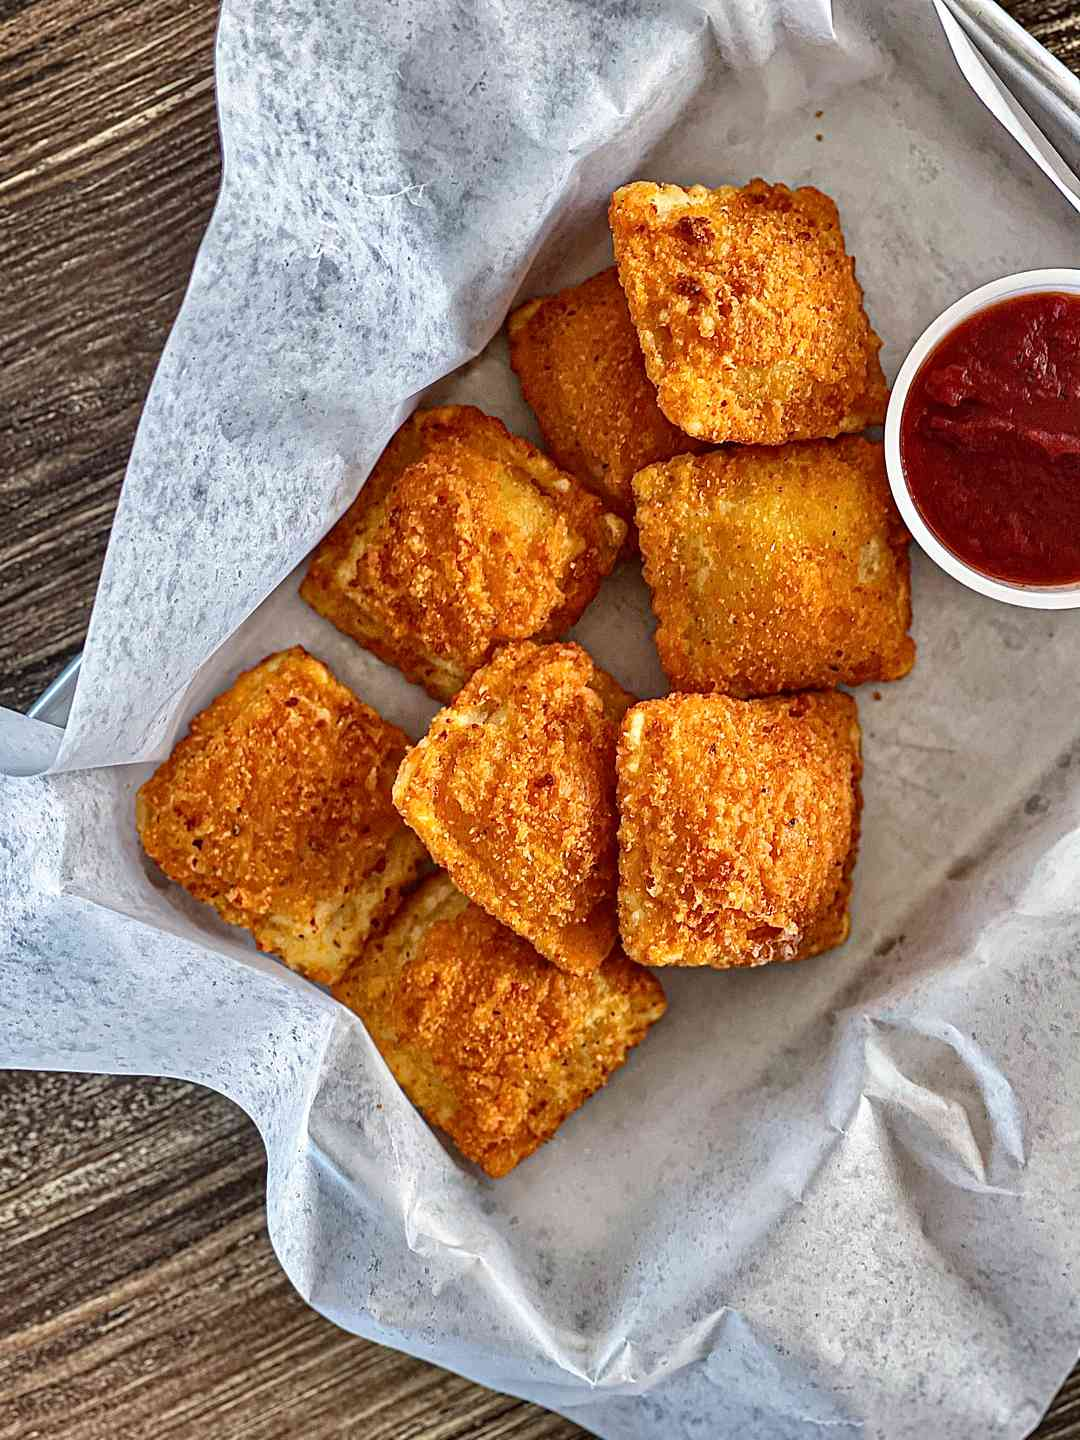 Fried Mozzarella Ravioli